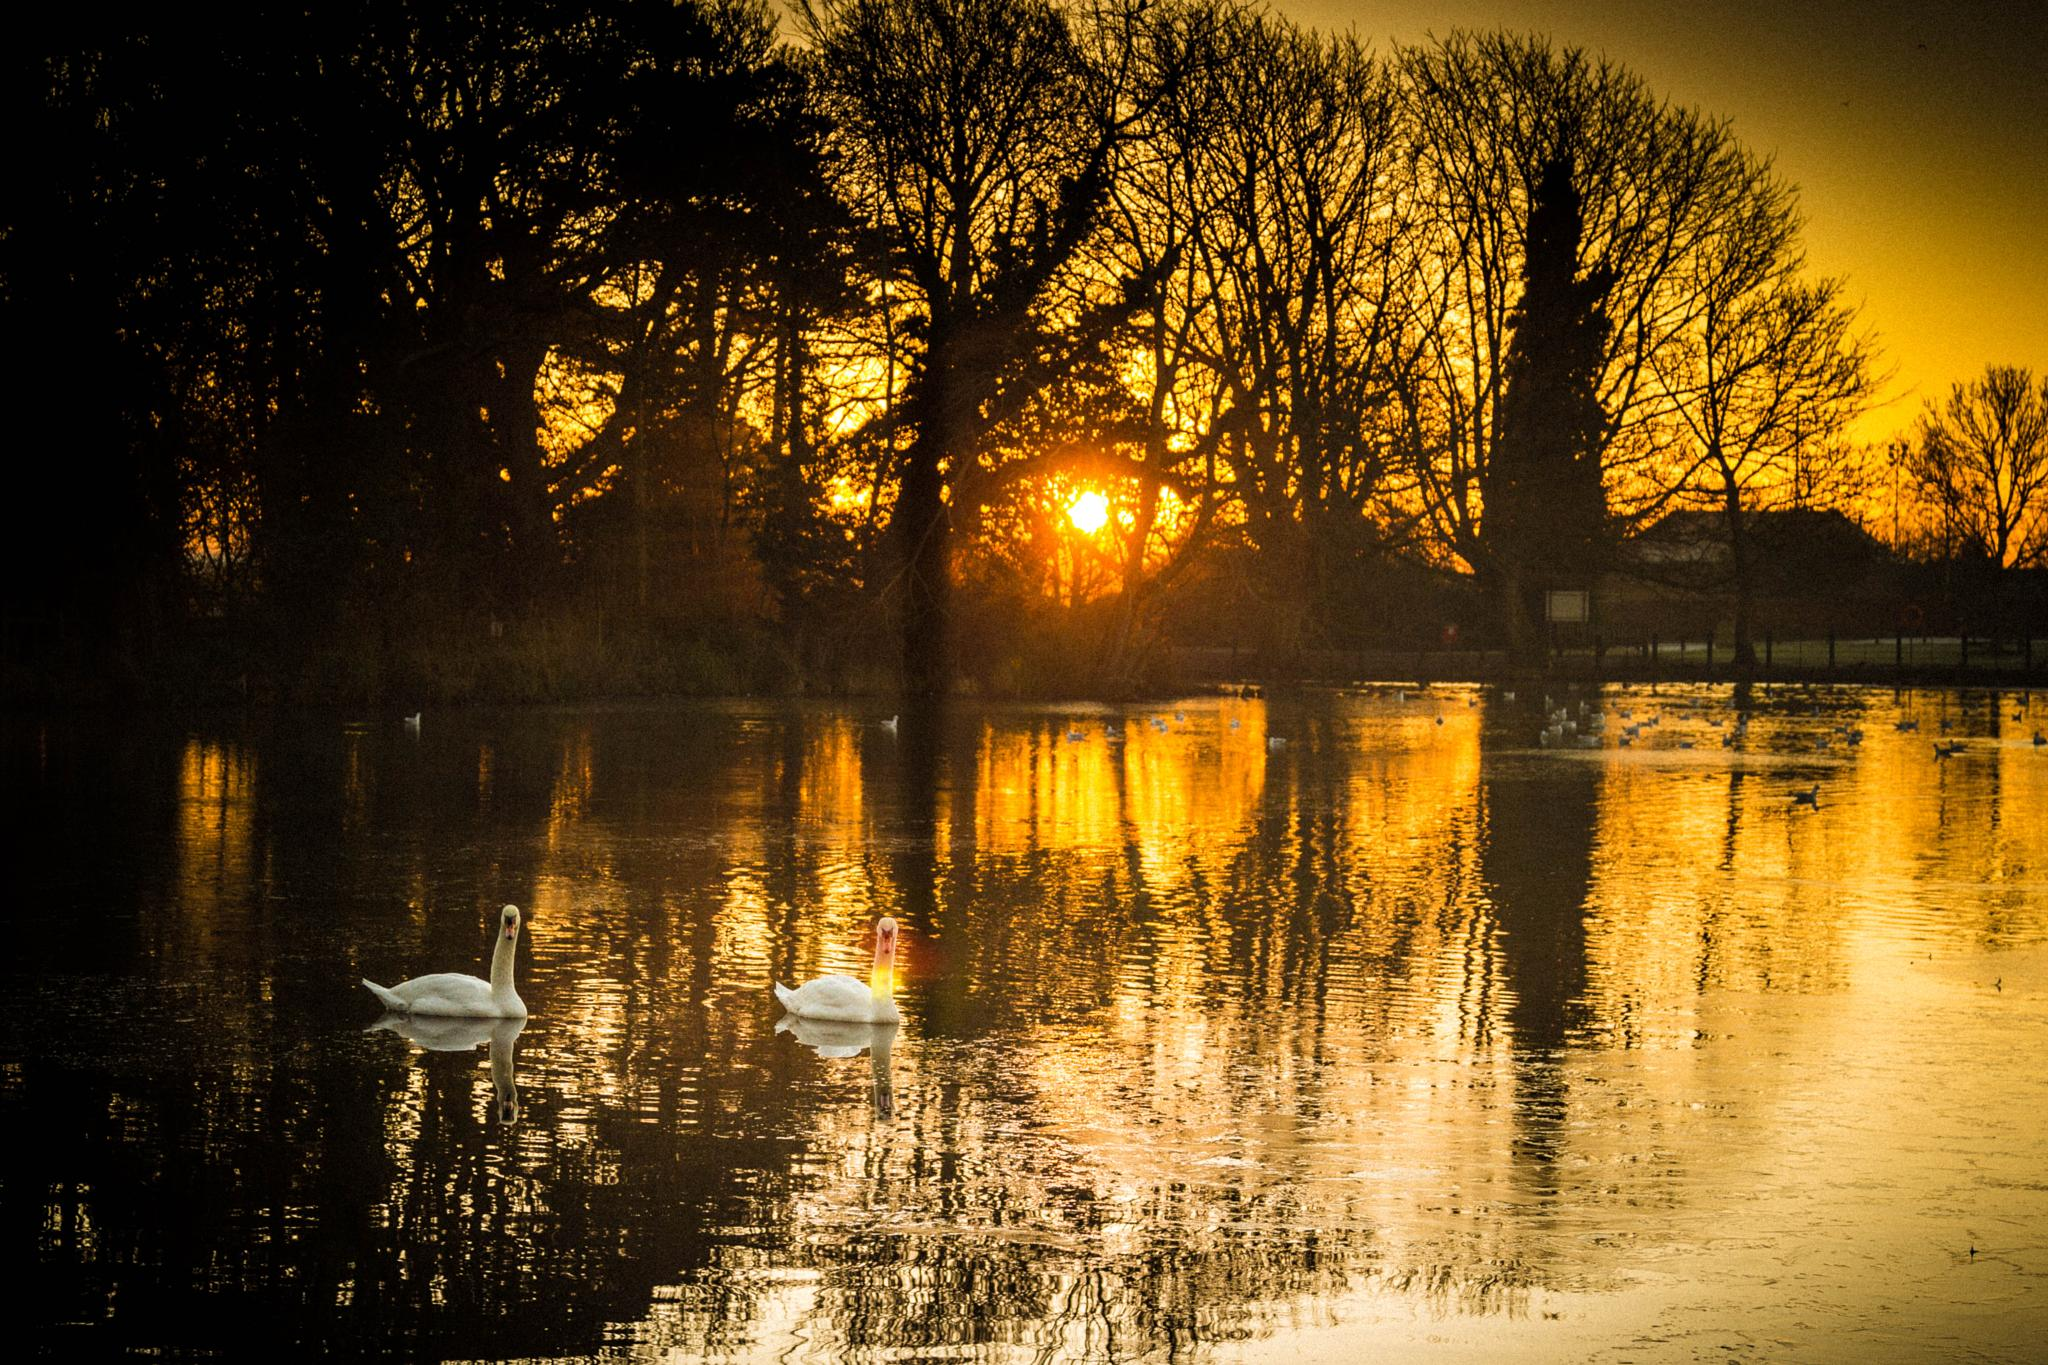 swans at sunrise  by eddie.powell.9809